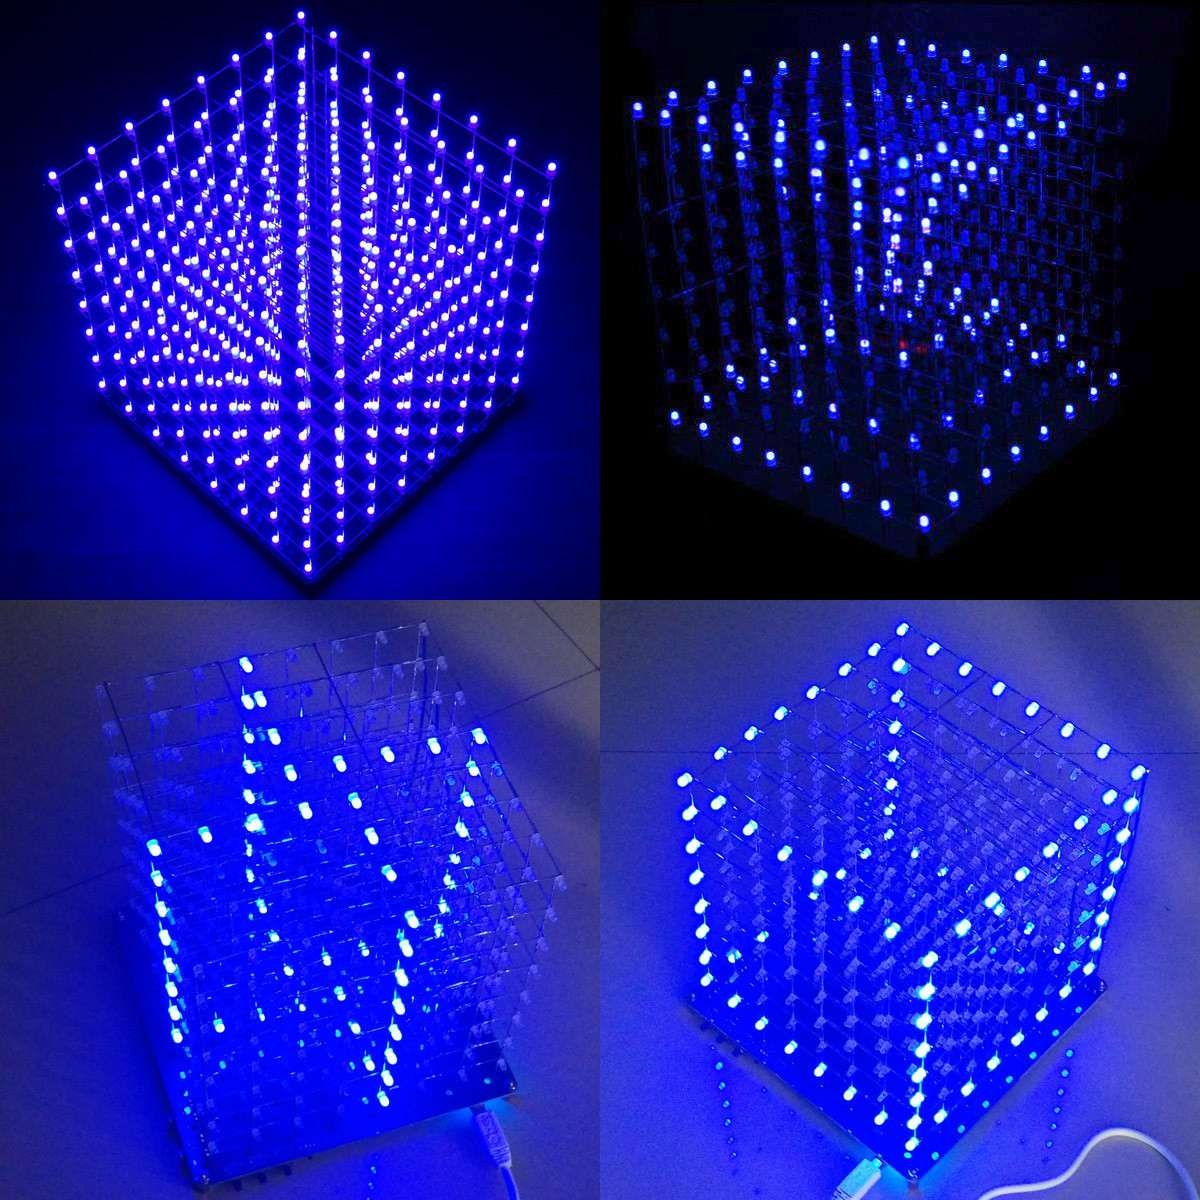 Audio & Video Replacement Parts Consumer Electronics Leory 1pc 16x16 268 Led 3d Led Light Cube Kit Music Spectrum Electronic Kit With Remote Control Welding Auxiliary Plate Diy A Wide Selection Of Colours And Designs